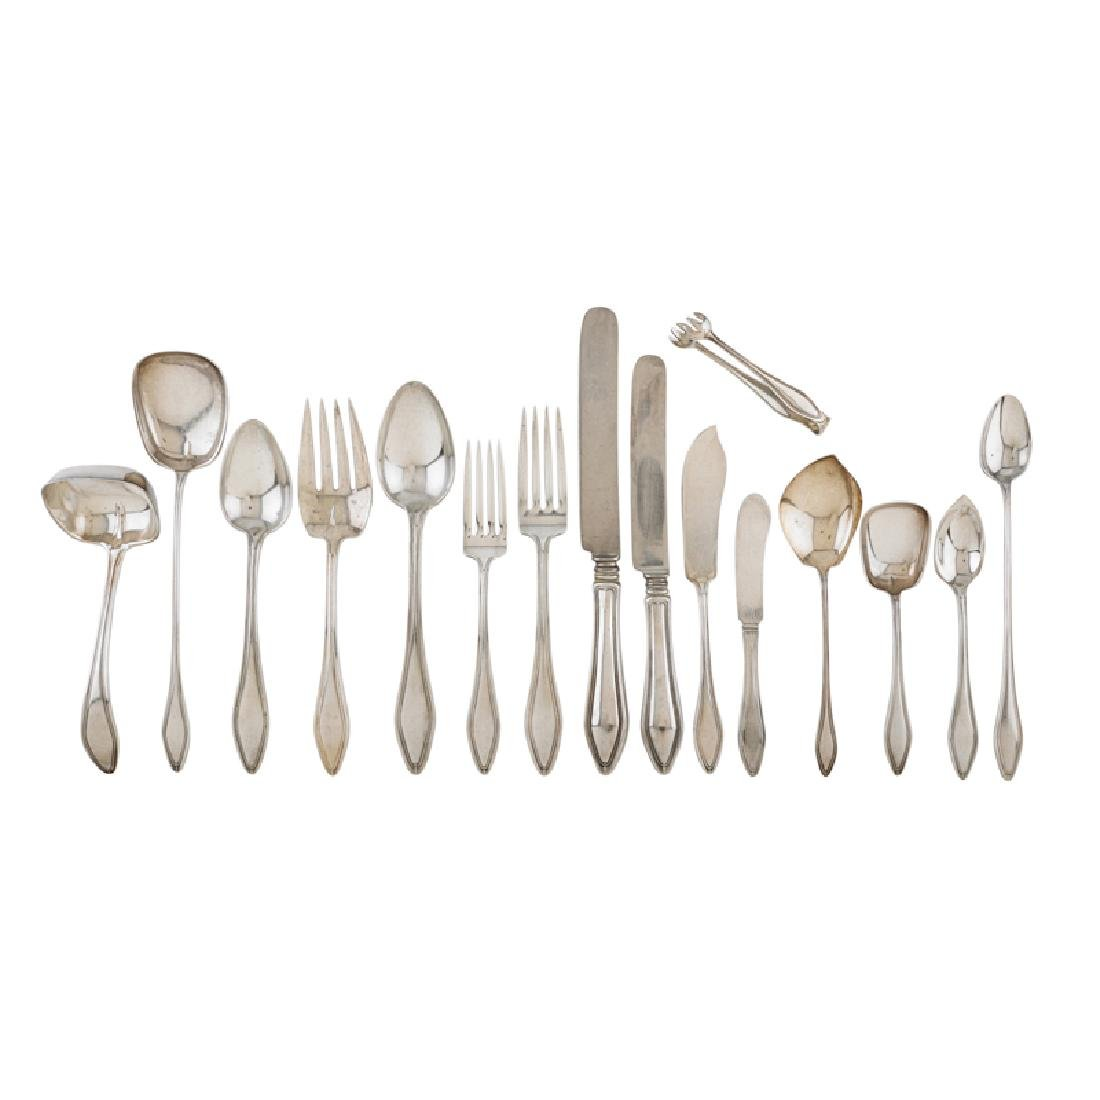 TOWLE MARY CHILTON STERLING SILVER FLATWARE